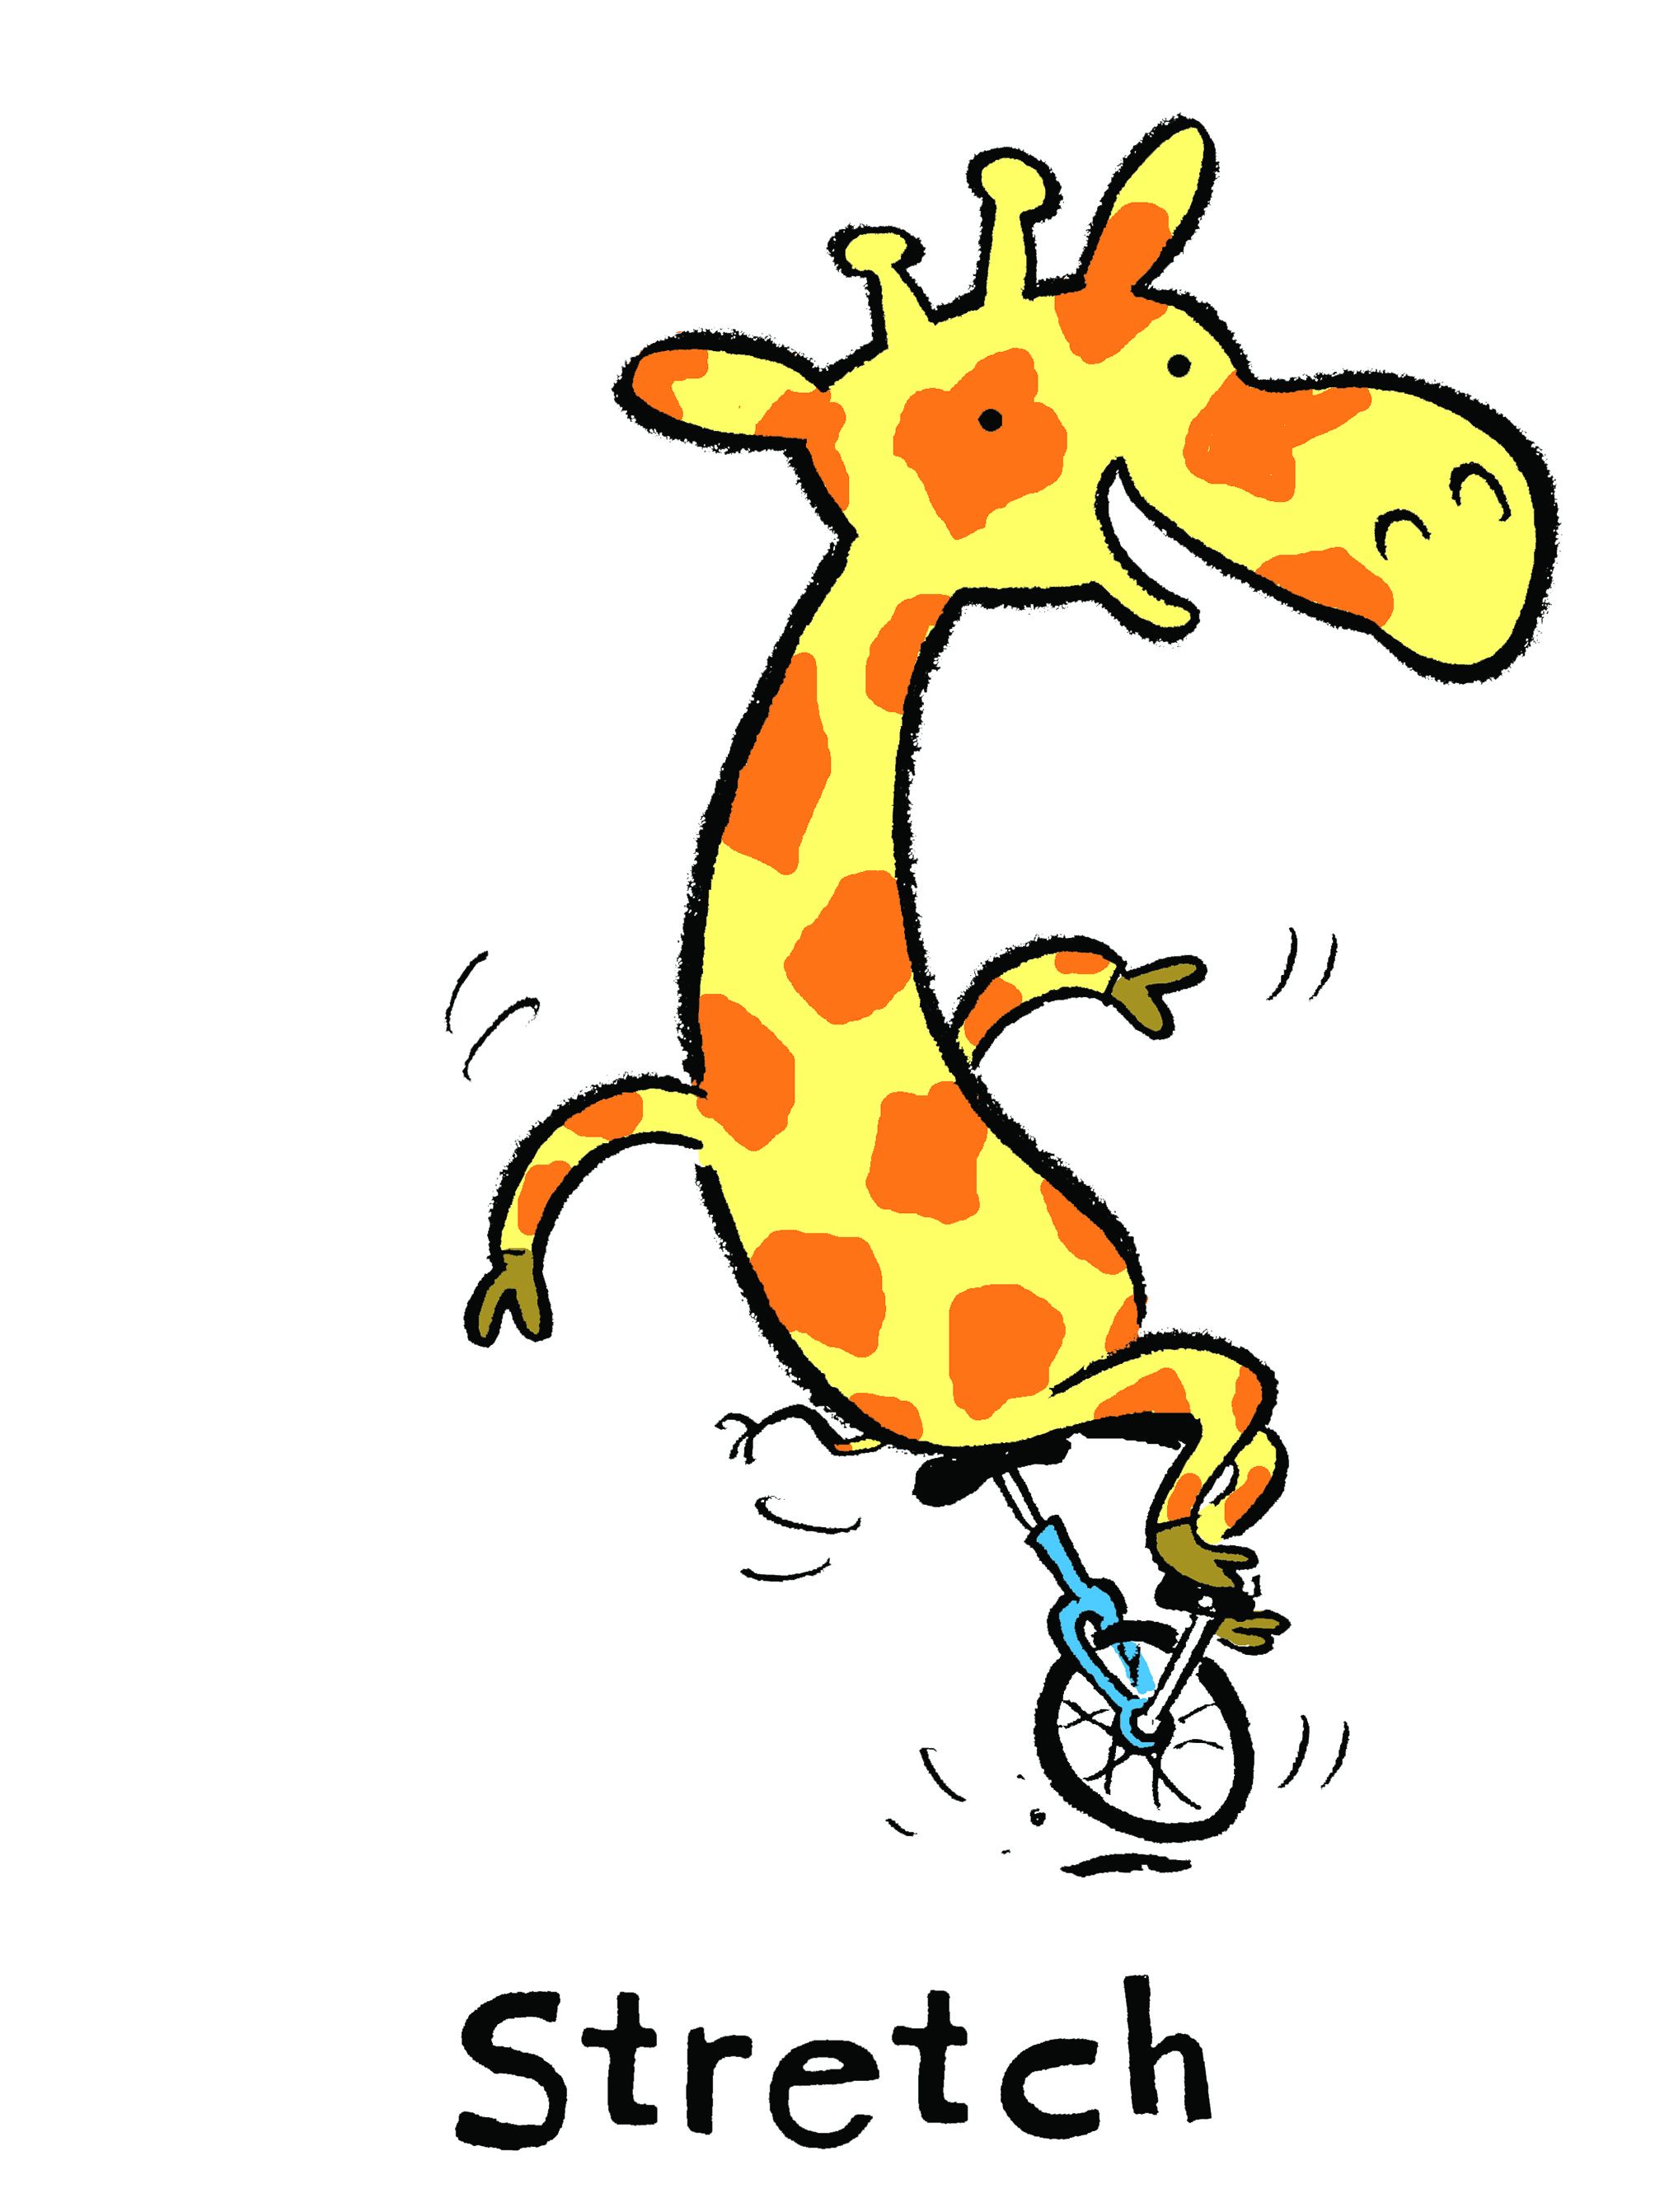 Stretch unicycle copy.jpg